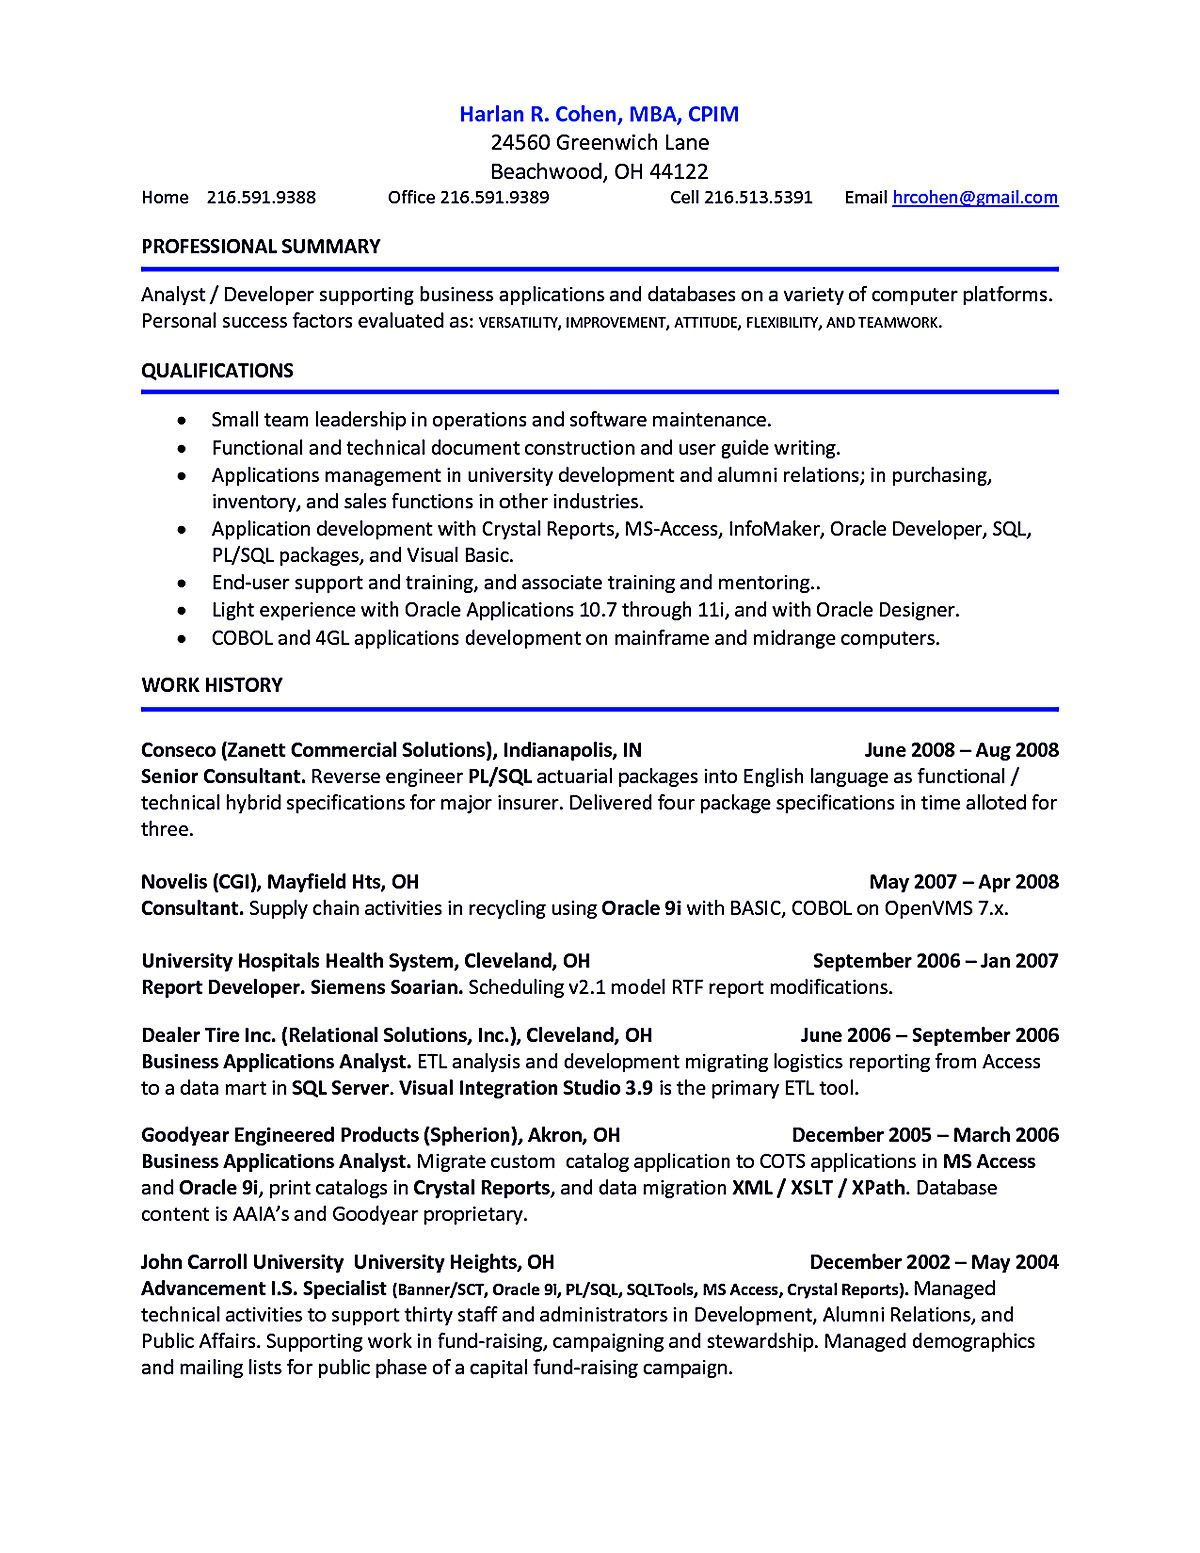 Professional Summary Resume Fair Account Receivable Resume Shows Both Technical And Interpersonal Decorating Design